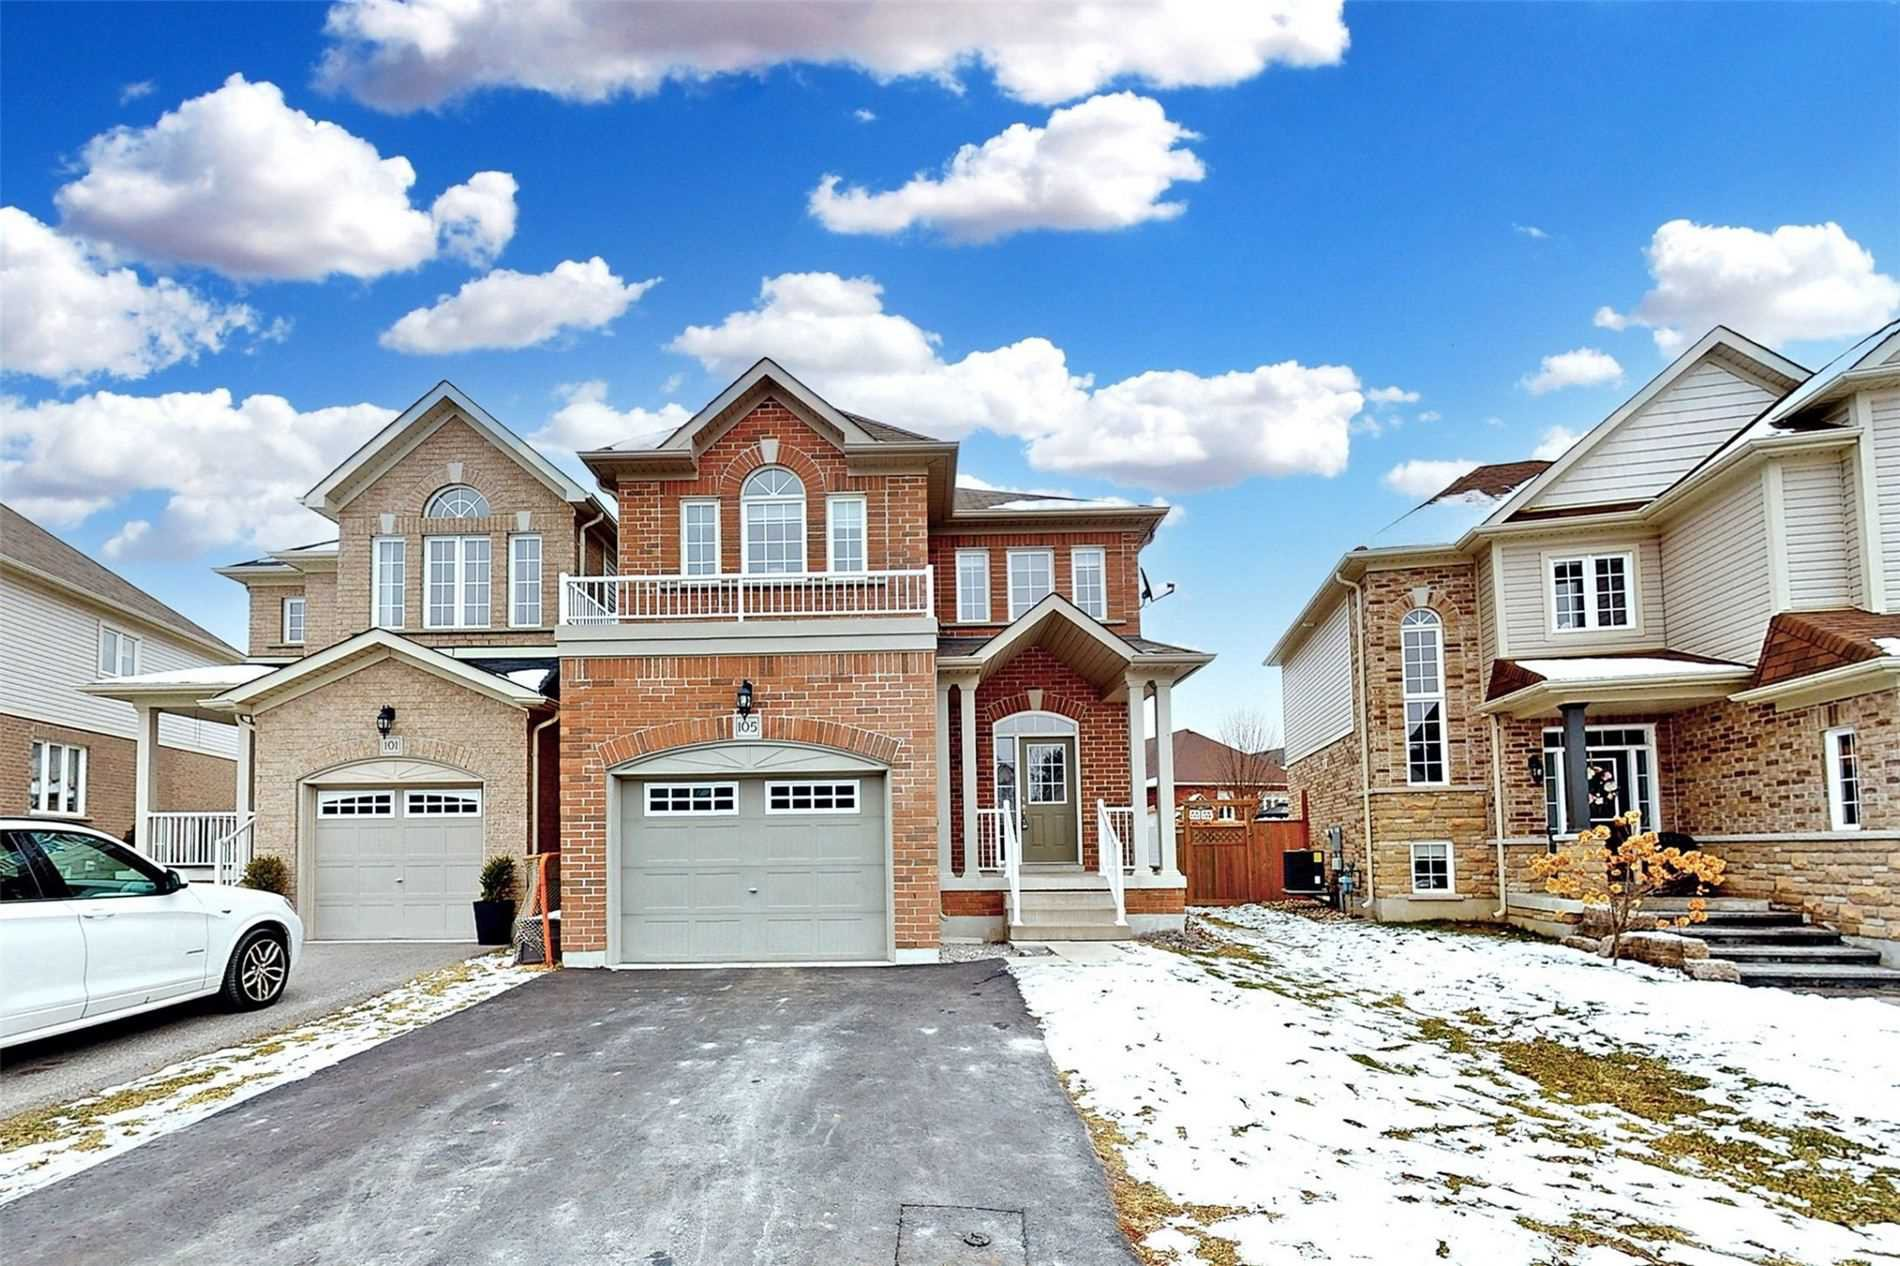 Main Photo: 105 Westover Drive in Clarington: Bowmanville House (2-Storey) for sale : MLS®# E5083148